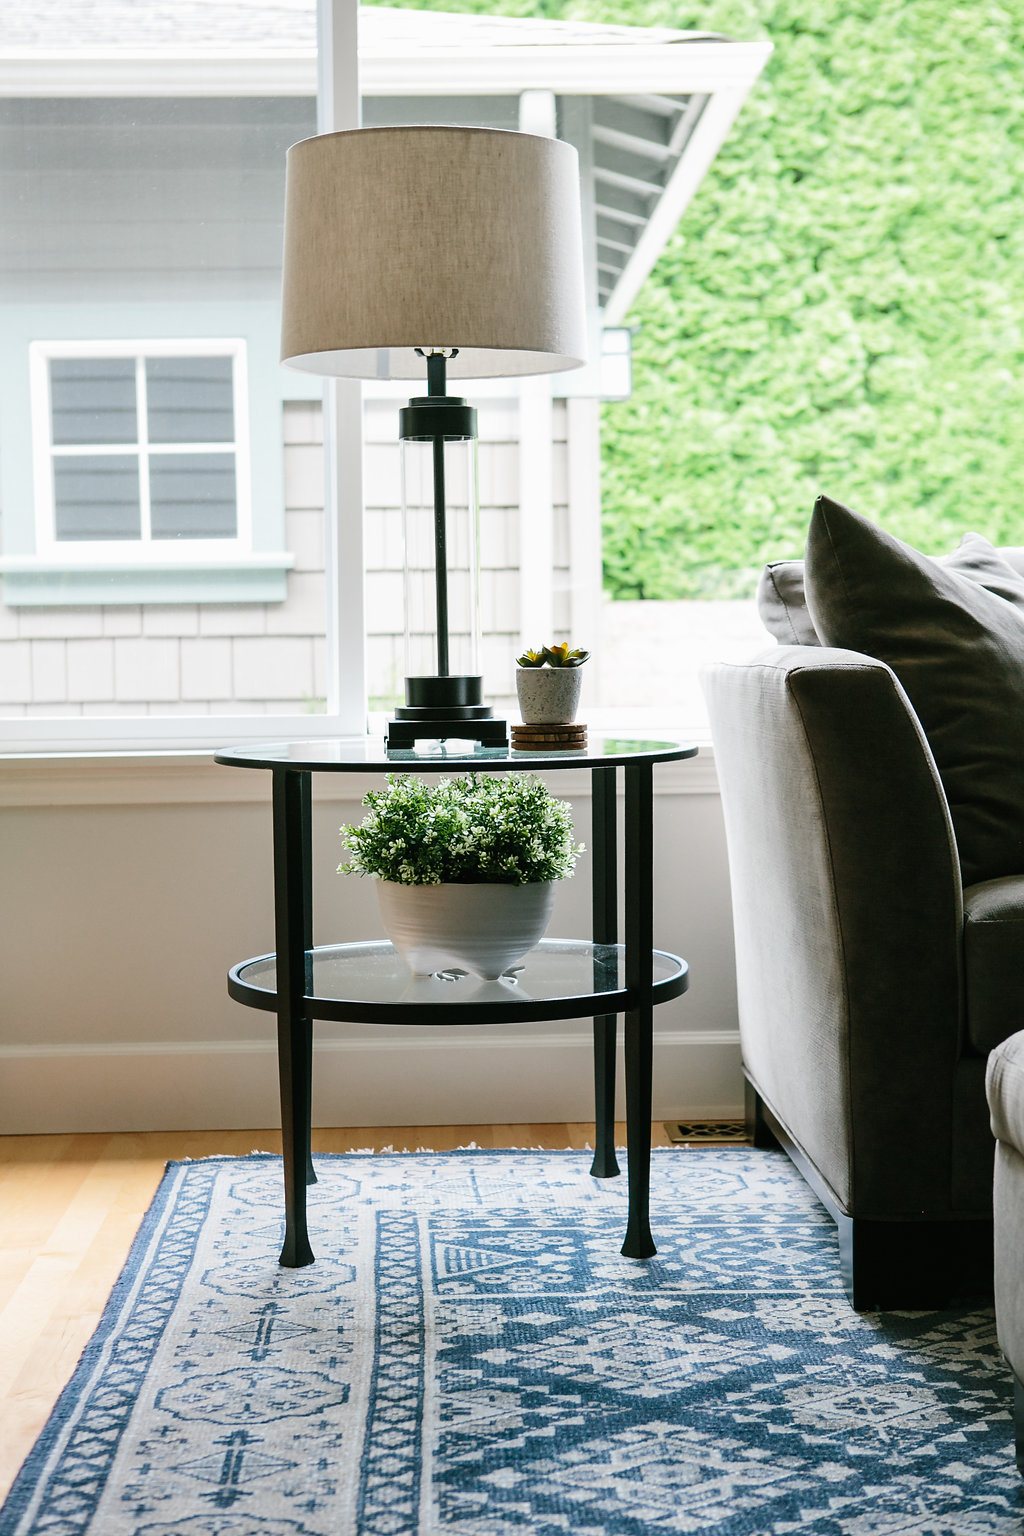 Endtable with lamp on navy blue rug.